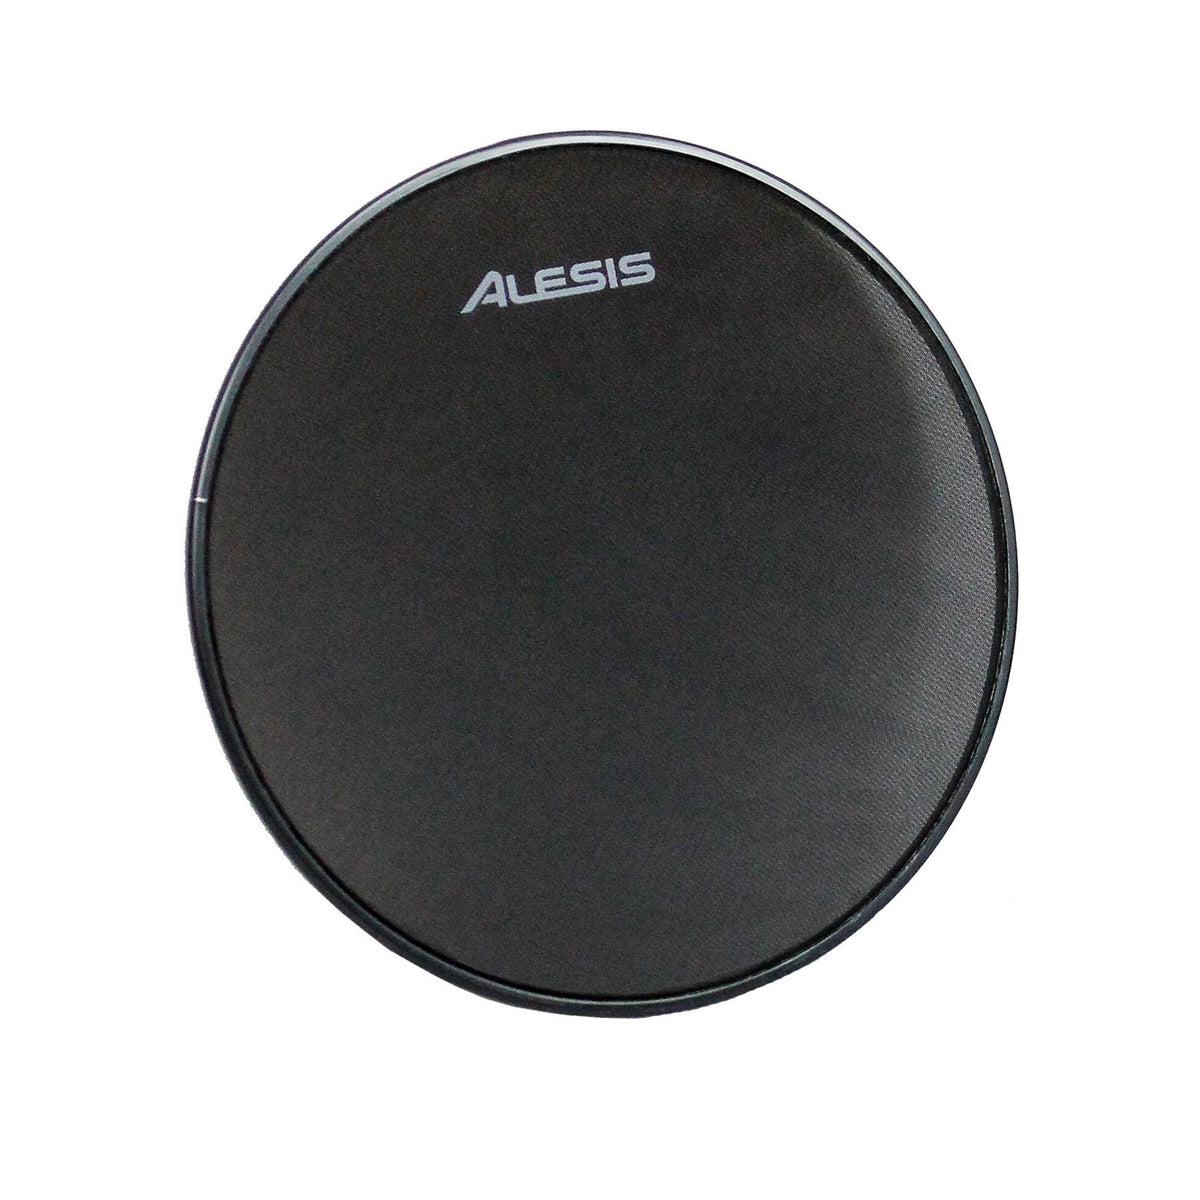 "Alesis 10"" Mesh Head for DM10 MKII Pro and DM10 MKII Studio Electronic Drum Kit"